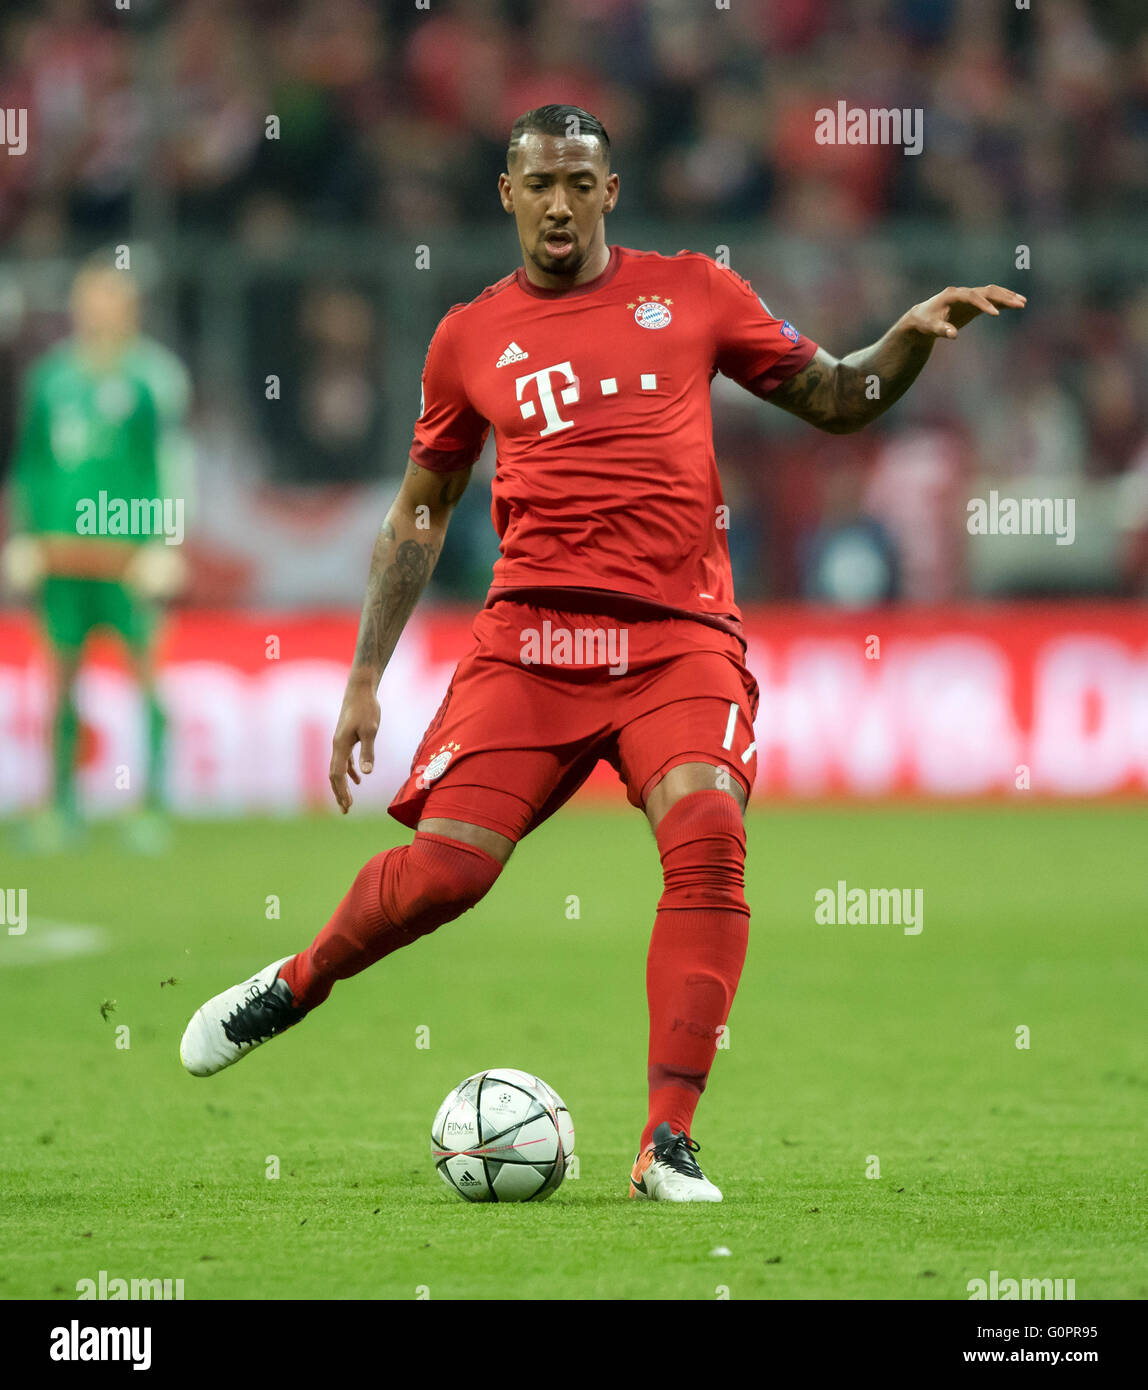 Bayern Munich s Jerome Boateng in action during the UEFA Champions